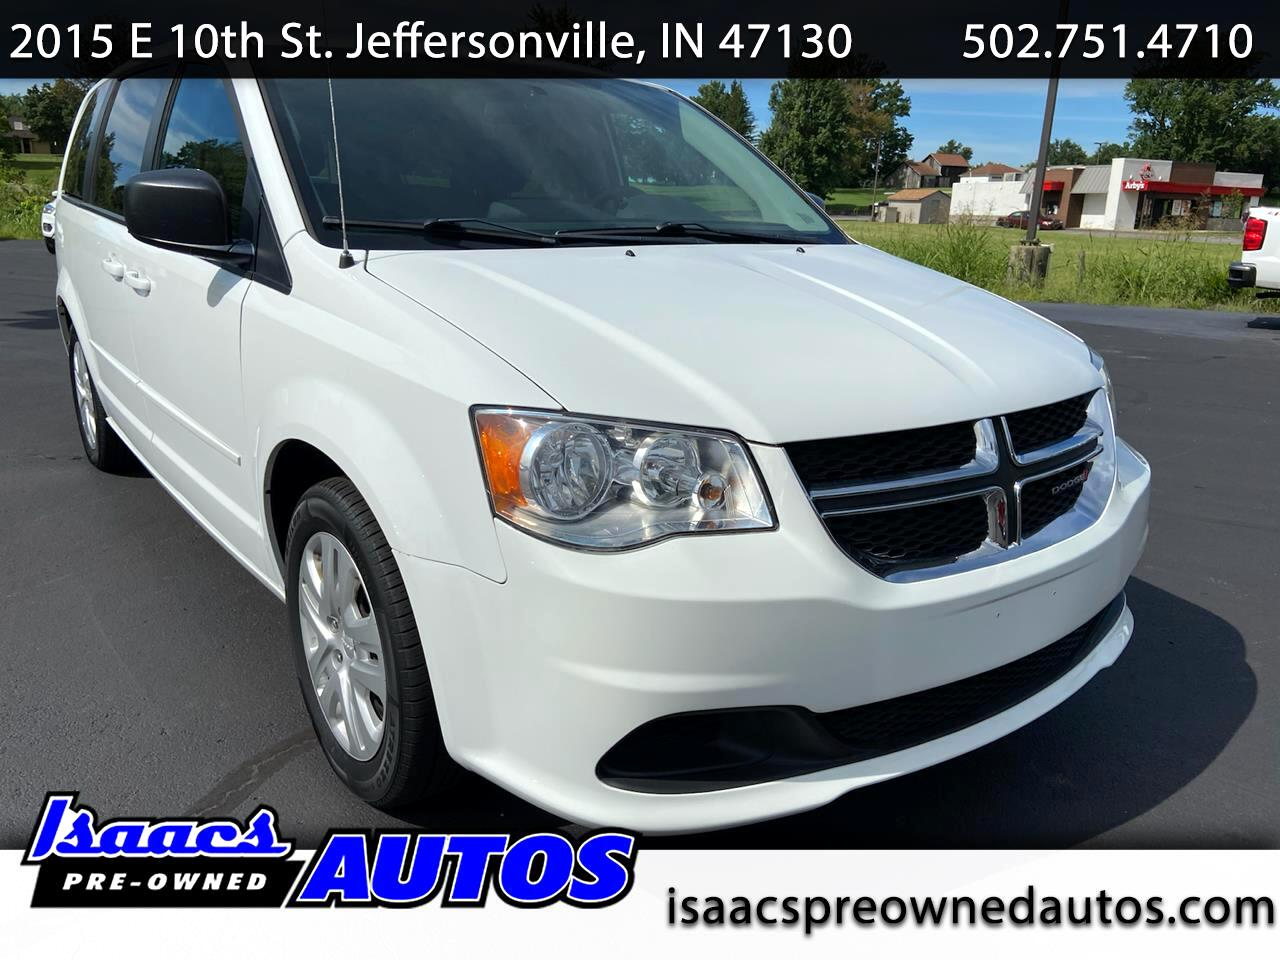 Dodge Grand Caravan 4dr Wgn SE 2015